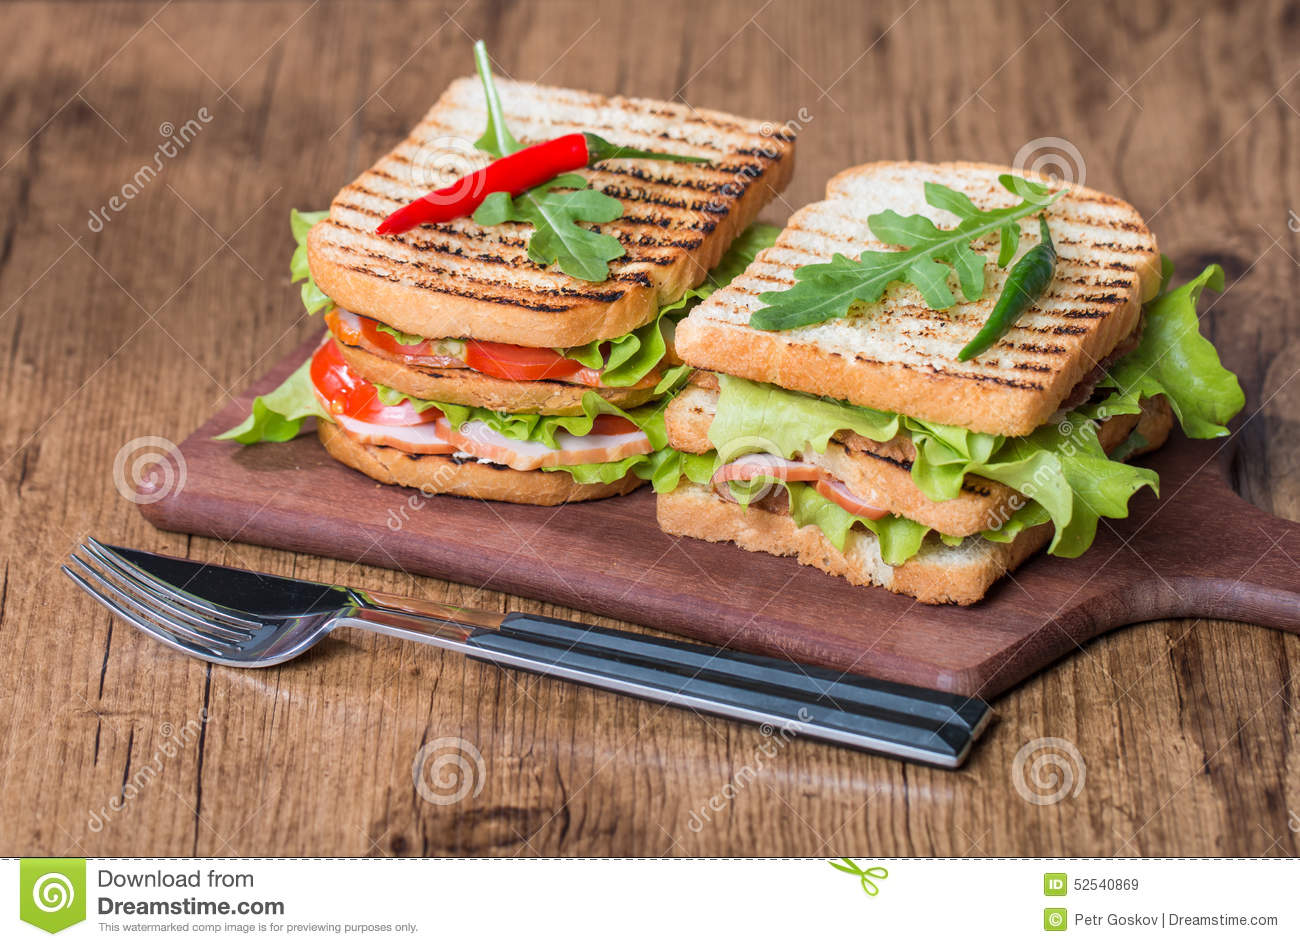 Classic Club Sandwich With Bacon And Vegetables Stock Photo - Image ...